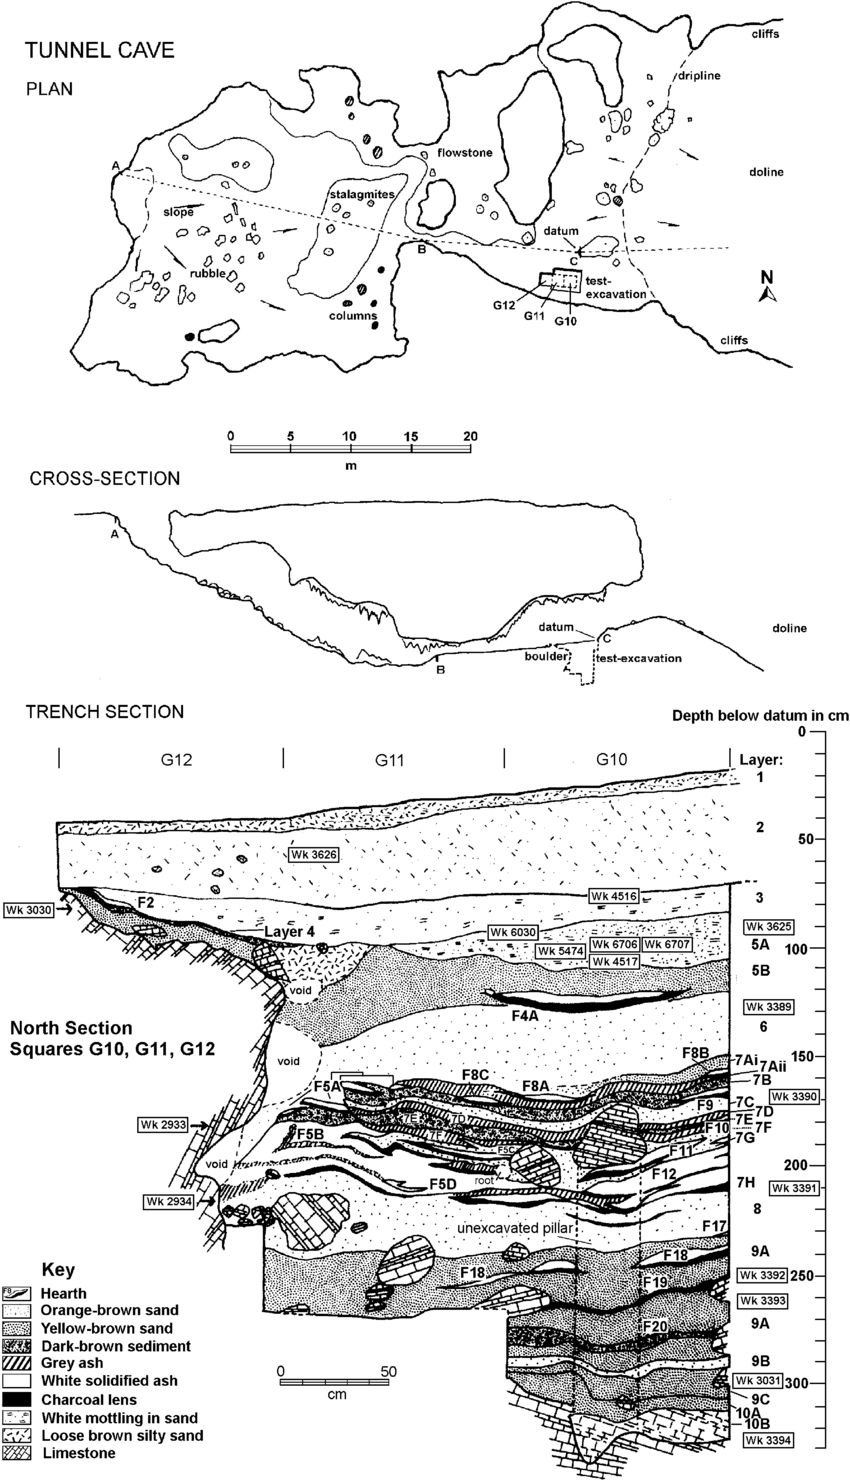 medium resolution of tunnel cave plan cave section and trench section